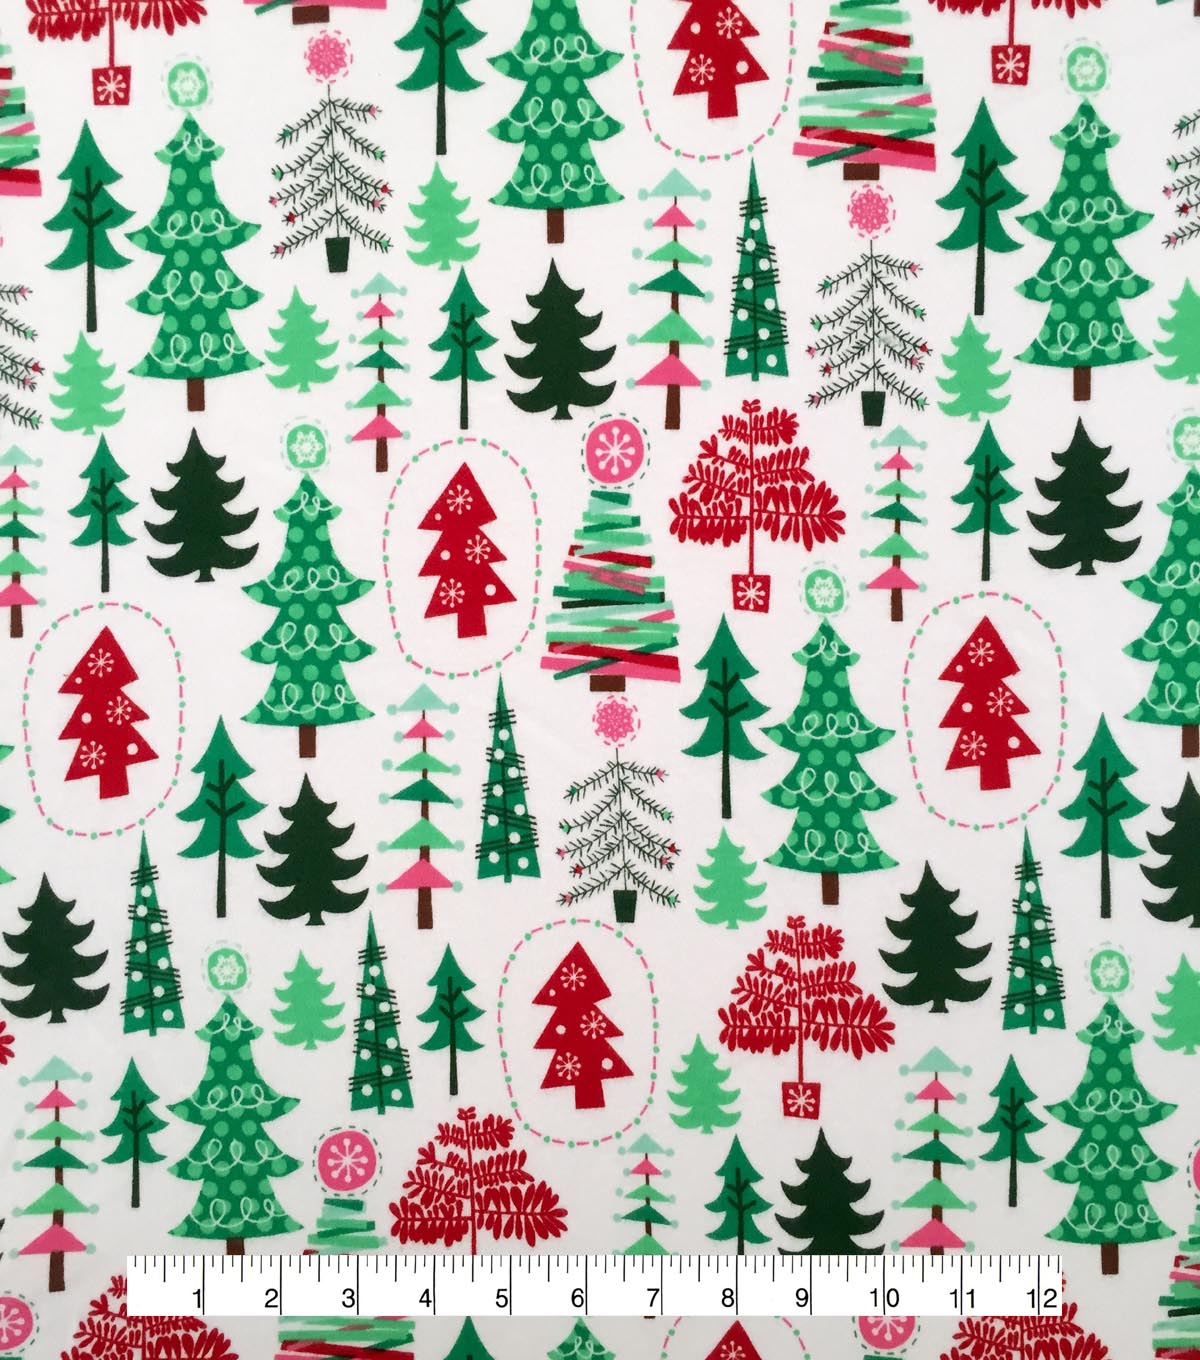 Doodles Christmas Interlock Cotton Fabric -Multi Colored Trees